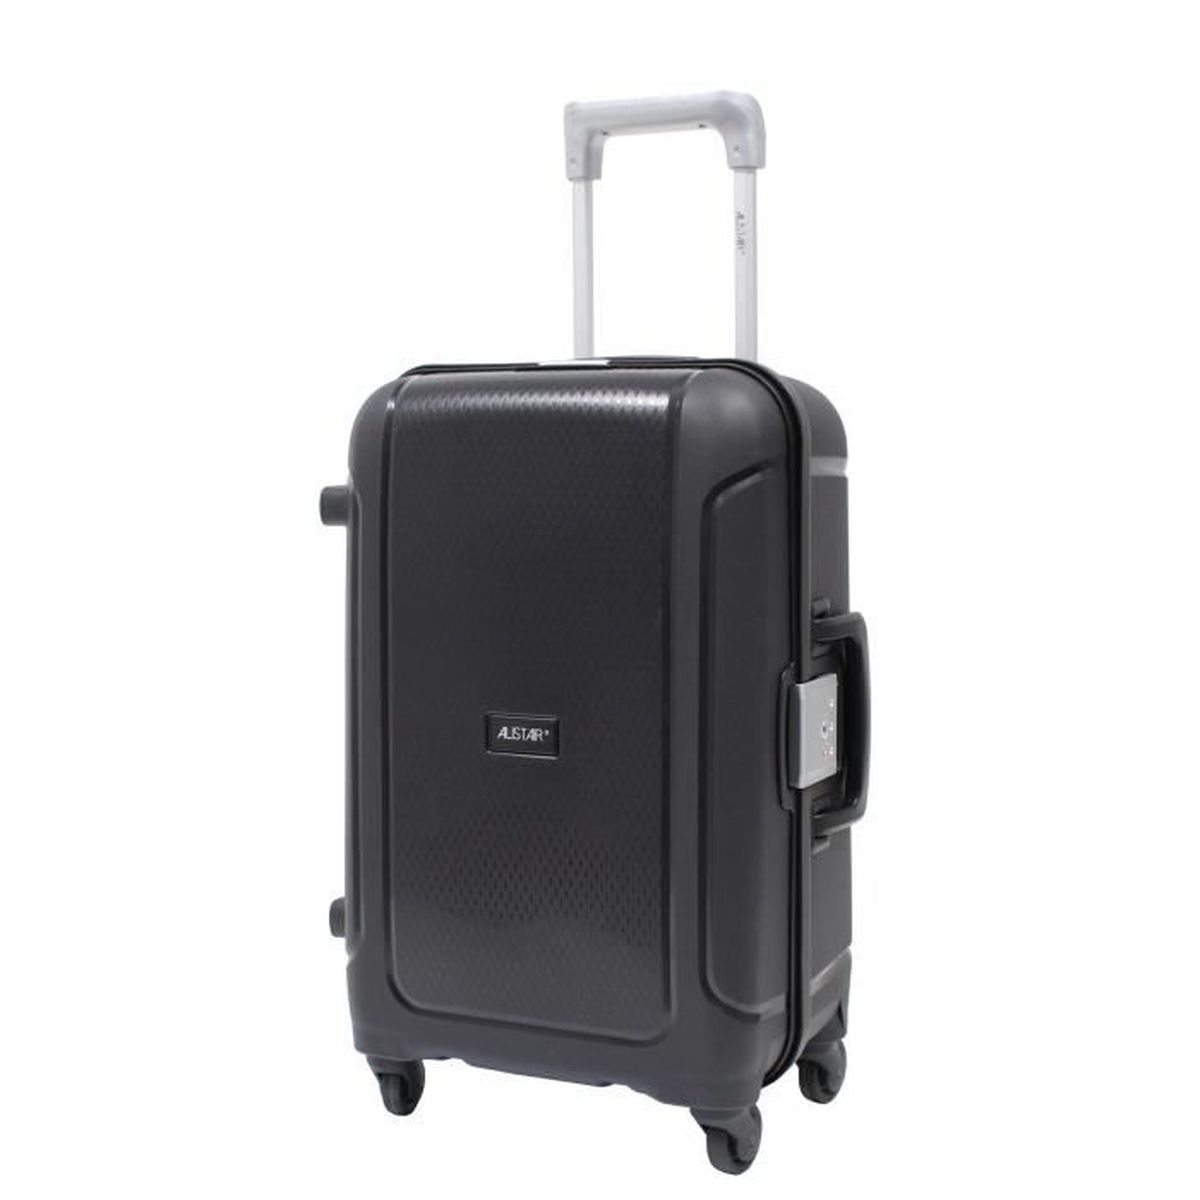 Chariot de courses pliable l/éger sur roulettes 55 x 35 x 20 cm Carry-on Butterflies Black